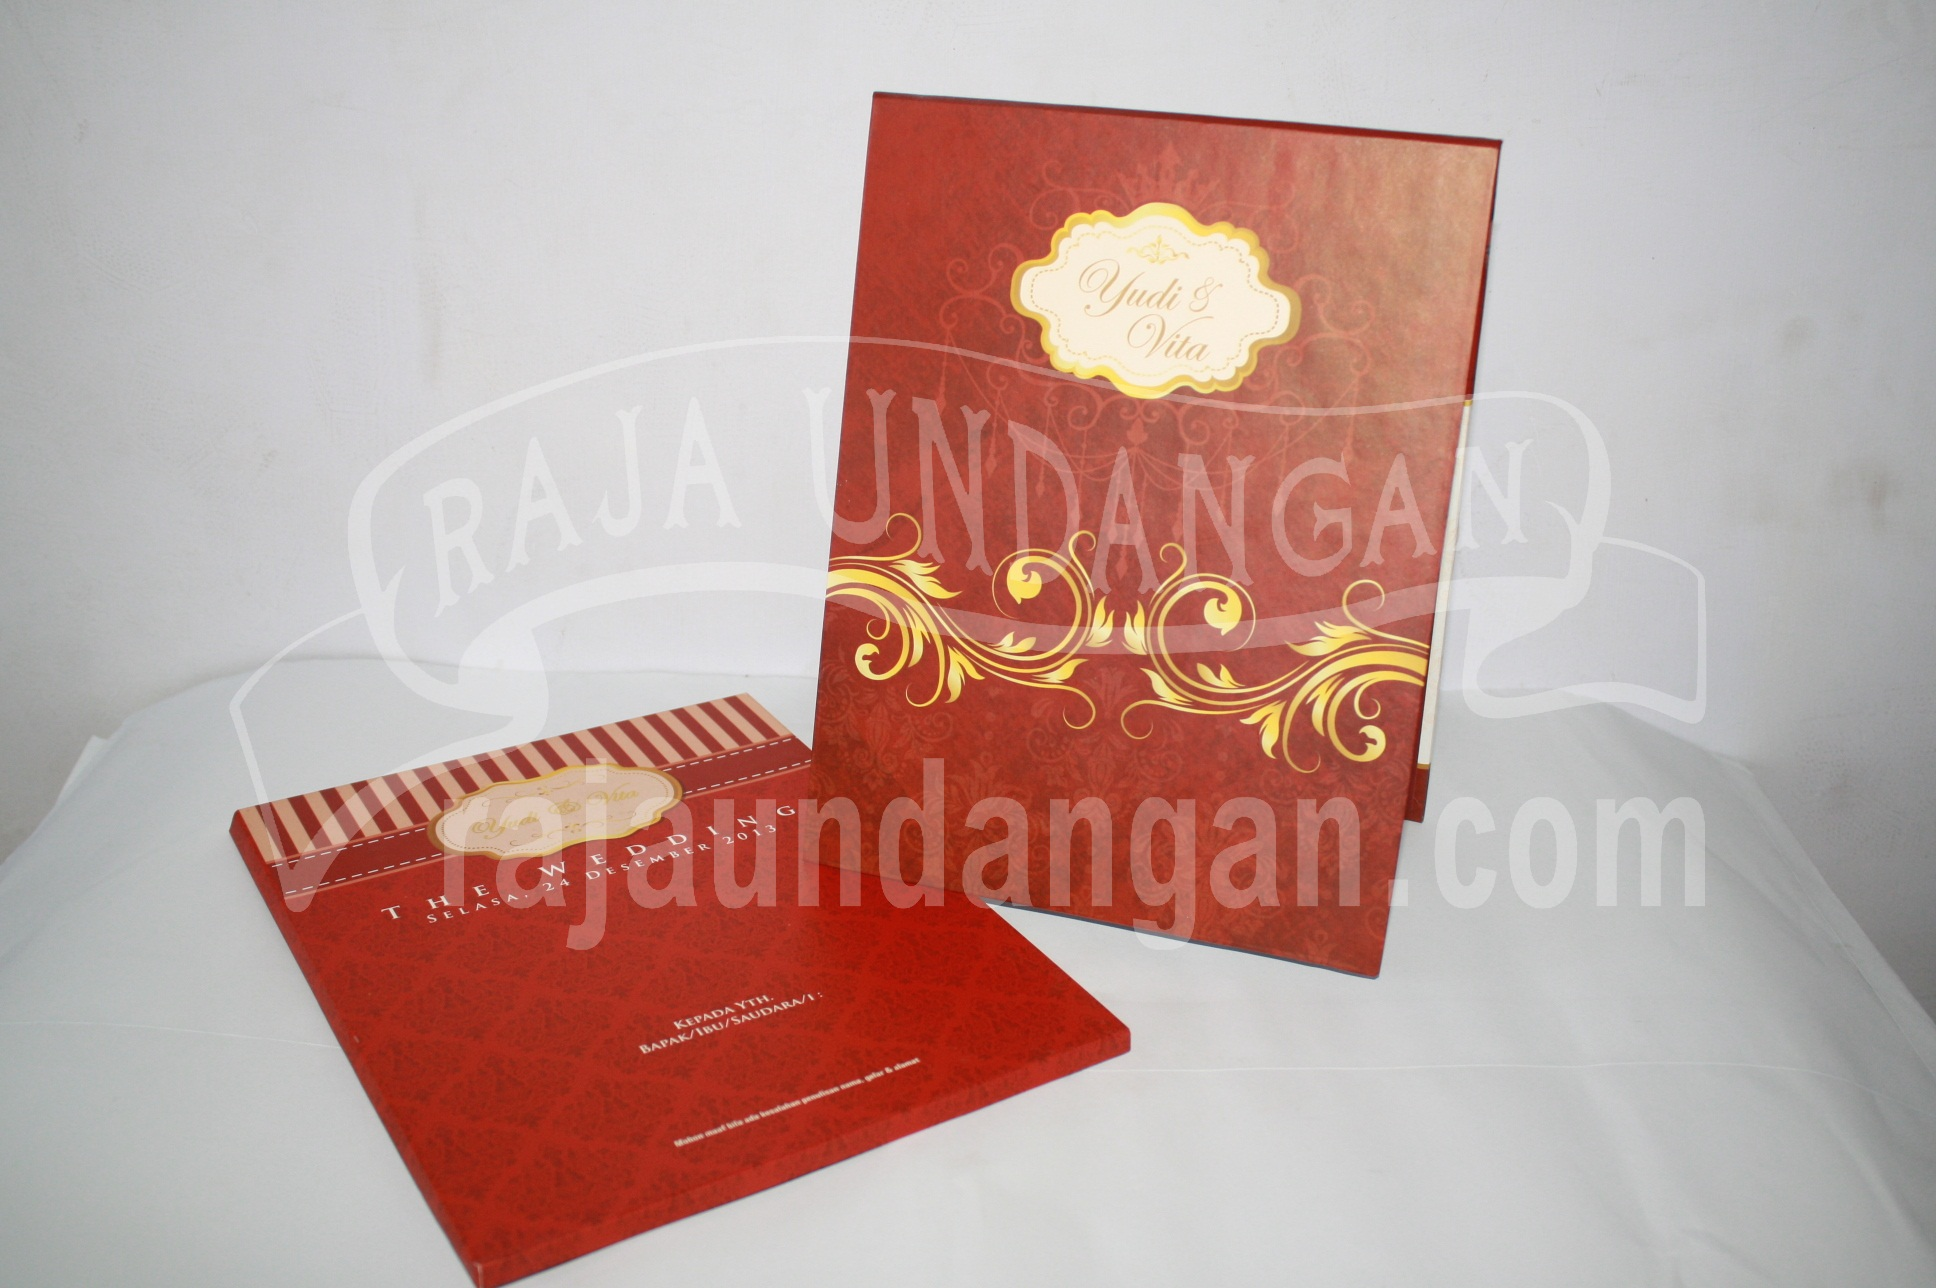 Undangan Pernikahan Hardcover Pop Up Pakai Amplop Yudi dan Vita EDC 441 - Percetakan Wedding Invitations Simple dan Elegan di Putat Jaya